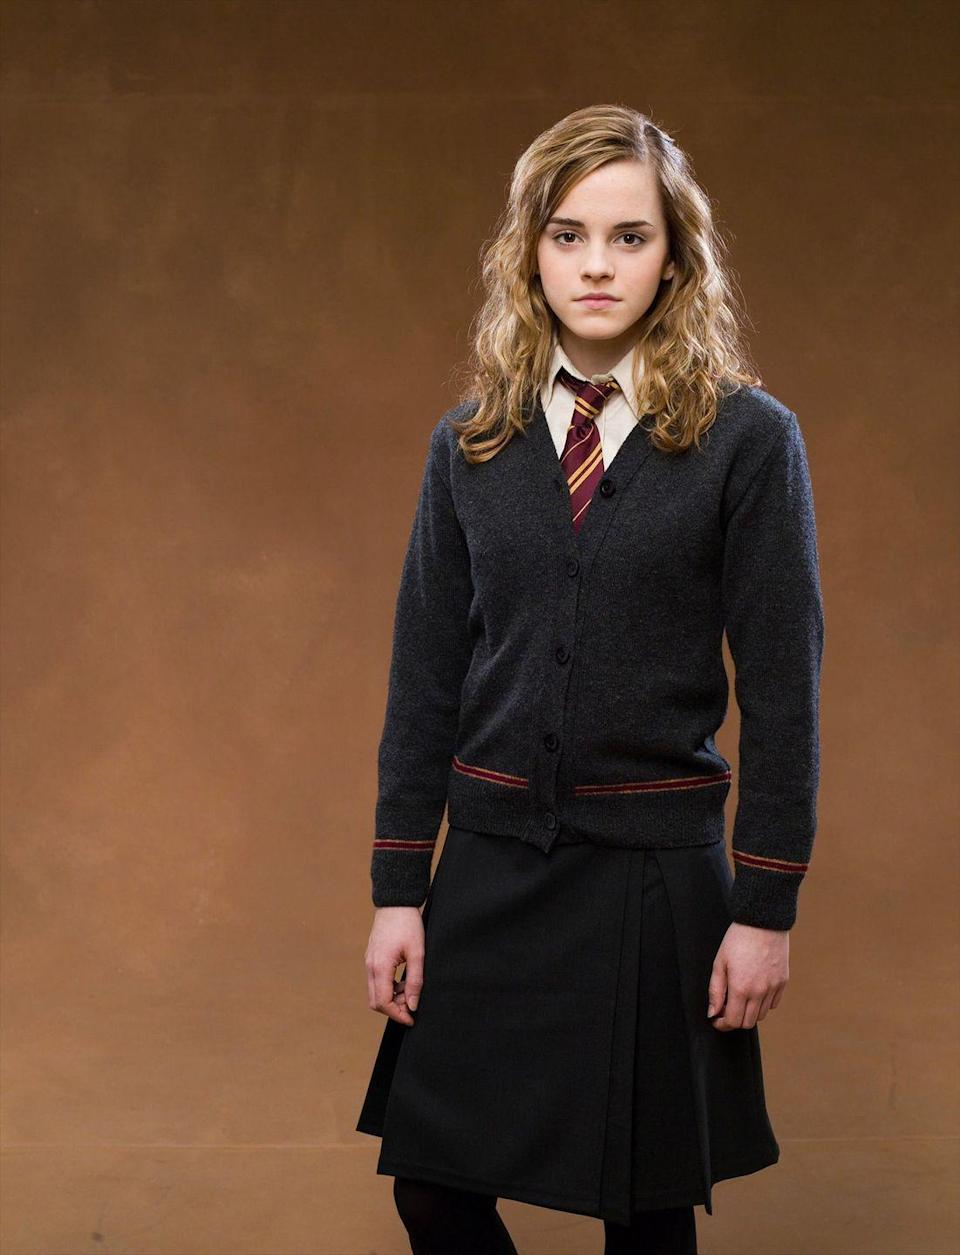 """<p>When you think witch, you have to think of Hermione Granger. To imitate the clever character, you can buy a Hogwarts uniform online, or you can piece one together on your own.</p><p><a class=""""link rapid-noclick-resp"""" href=""""https://www.amazon.com/Toddler-Little-Pleated-School-Uniform/dp/B07DNM2FTL/?tag=syn-yahoo-20&ascsubtag=%5Bartid%7C2164.g.37050429%5Bsrc%7Cyahoo-us"""" rel=""""nofollow noopener"""" target=""""_blank"""" data-ylk=""""slk:SHOP BLACK SKIRTS"""">SHOP BLACK SKIRTS</a></p><p><a class=""""link rapid-noclick-resp"""" href=""""https://www.amazon.com/Instar-Mode-Classic-Cardigan-Charcoal/dp/B07GSJRML3/?tag=syn-yahoo-20&ascsubtag=%5Bartid%7C2164.g.37050429%5Bsrc%7Cyahoo-us"""" rel=""""nofollow noopener"""" target=""""_blank"""" data-ylk=""""slk:SHOP GRAY CARDIGANS"""">SHOP GRAY CARDIGANS</a></p><p><a class=""""link rapid-noclick-resp"""" href=""""https://www.amazon.com/Womens-Formal-White-Simple-225White/dp/B00VYR3O2O/?tag=syn-yahoo-20&ascsubtag=%5Bartid%7C2164.g.37050429%5Bsrc%7Cyahoo-us"""" rel=""""nofollow noopener"""" target=""""_blank"""" data-ylk=""""slk:SHOP WHITE BUTTON-UP SHIRTS"""">SHOP WHITE BUTTON-UP SHIRTS</a></p><p><a class=""""link rapid-noclick-resp"""" href=""""https://www.amazon.com/MISS-FANTASY-Birthday-Accessory-Halloween/dp/B07YK9RT37/?tag=syn-yahoo-20&ascsubtag=%5Bartid%7C2164.g.37050429%5Bsrc%7Cyahoo-us"""" rel=""""nofollow noopener"""" target=""""_blank"""" data-ylk=""""slk:SHOP GRYFFINDOR TIES"""">SHOP GRYFFINDOR TIES</a></p>"""